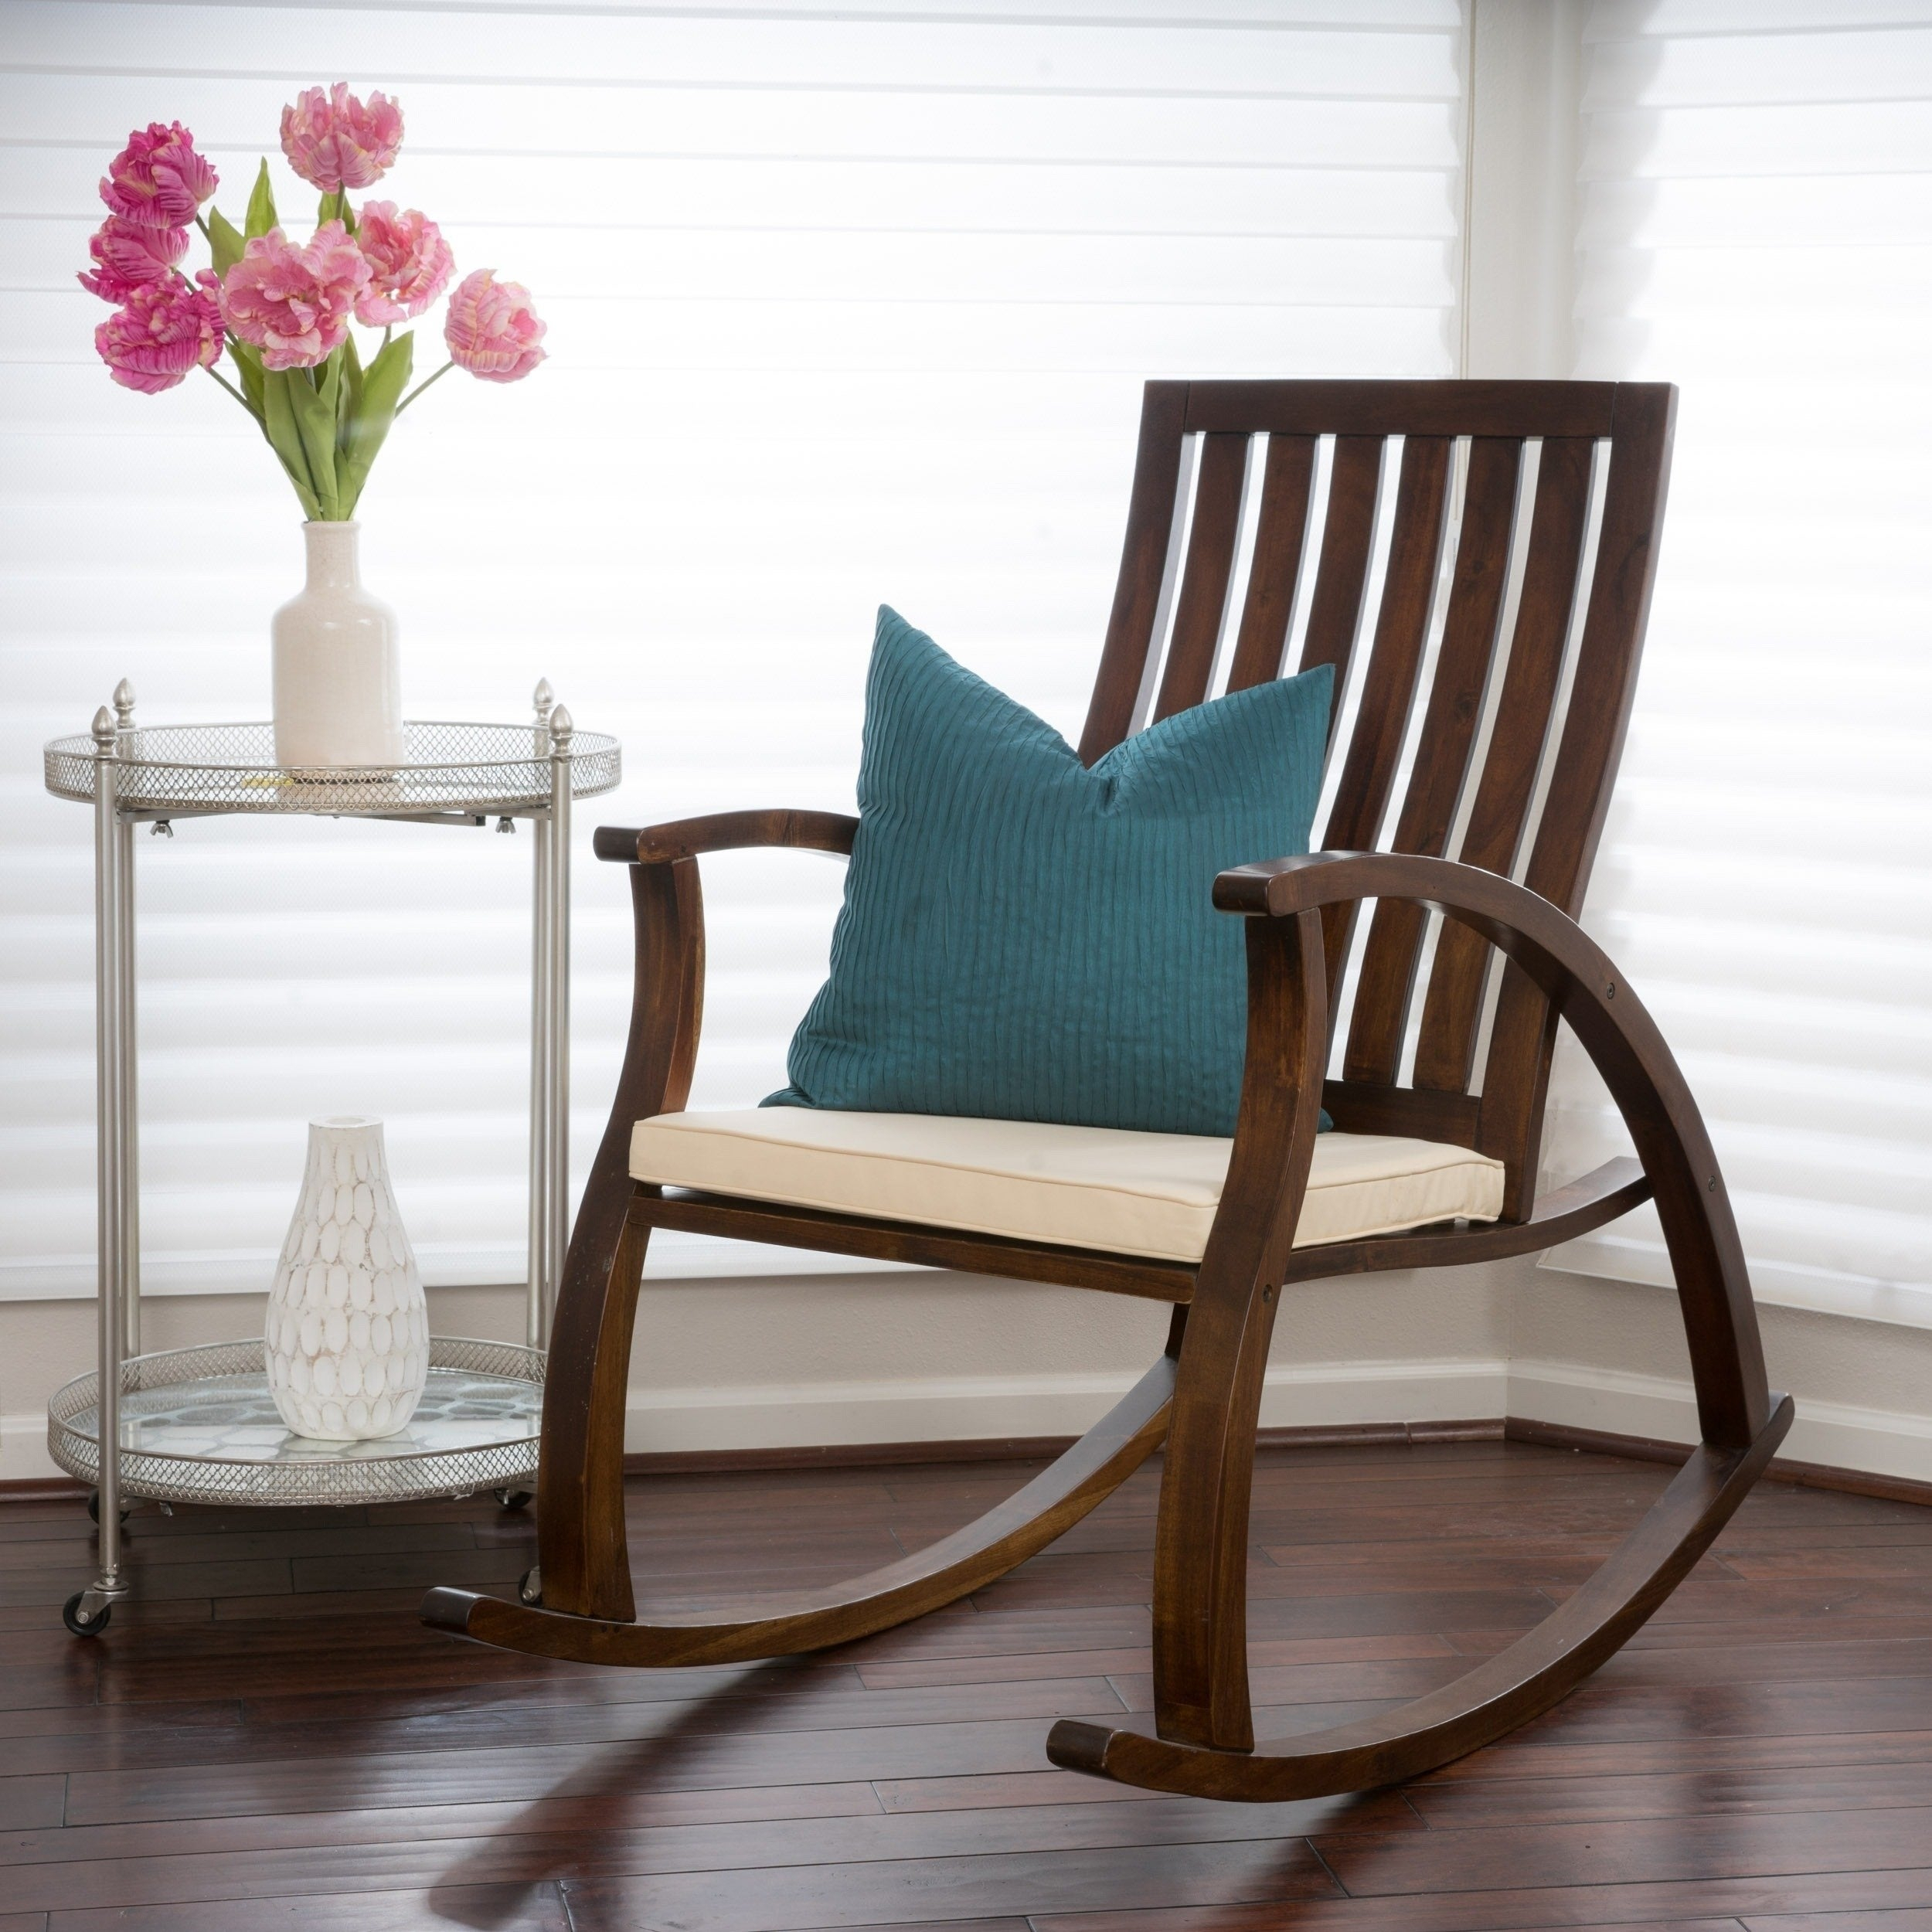 Abraham Brown Mahogany Wood Rocking Chair W/ Cushionchristopher Knight Home Throughout Carbon Loft Ariel Rocking Chairs In Espresso Pu And Walnut (View 5 of 20)